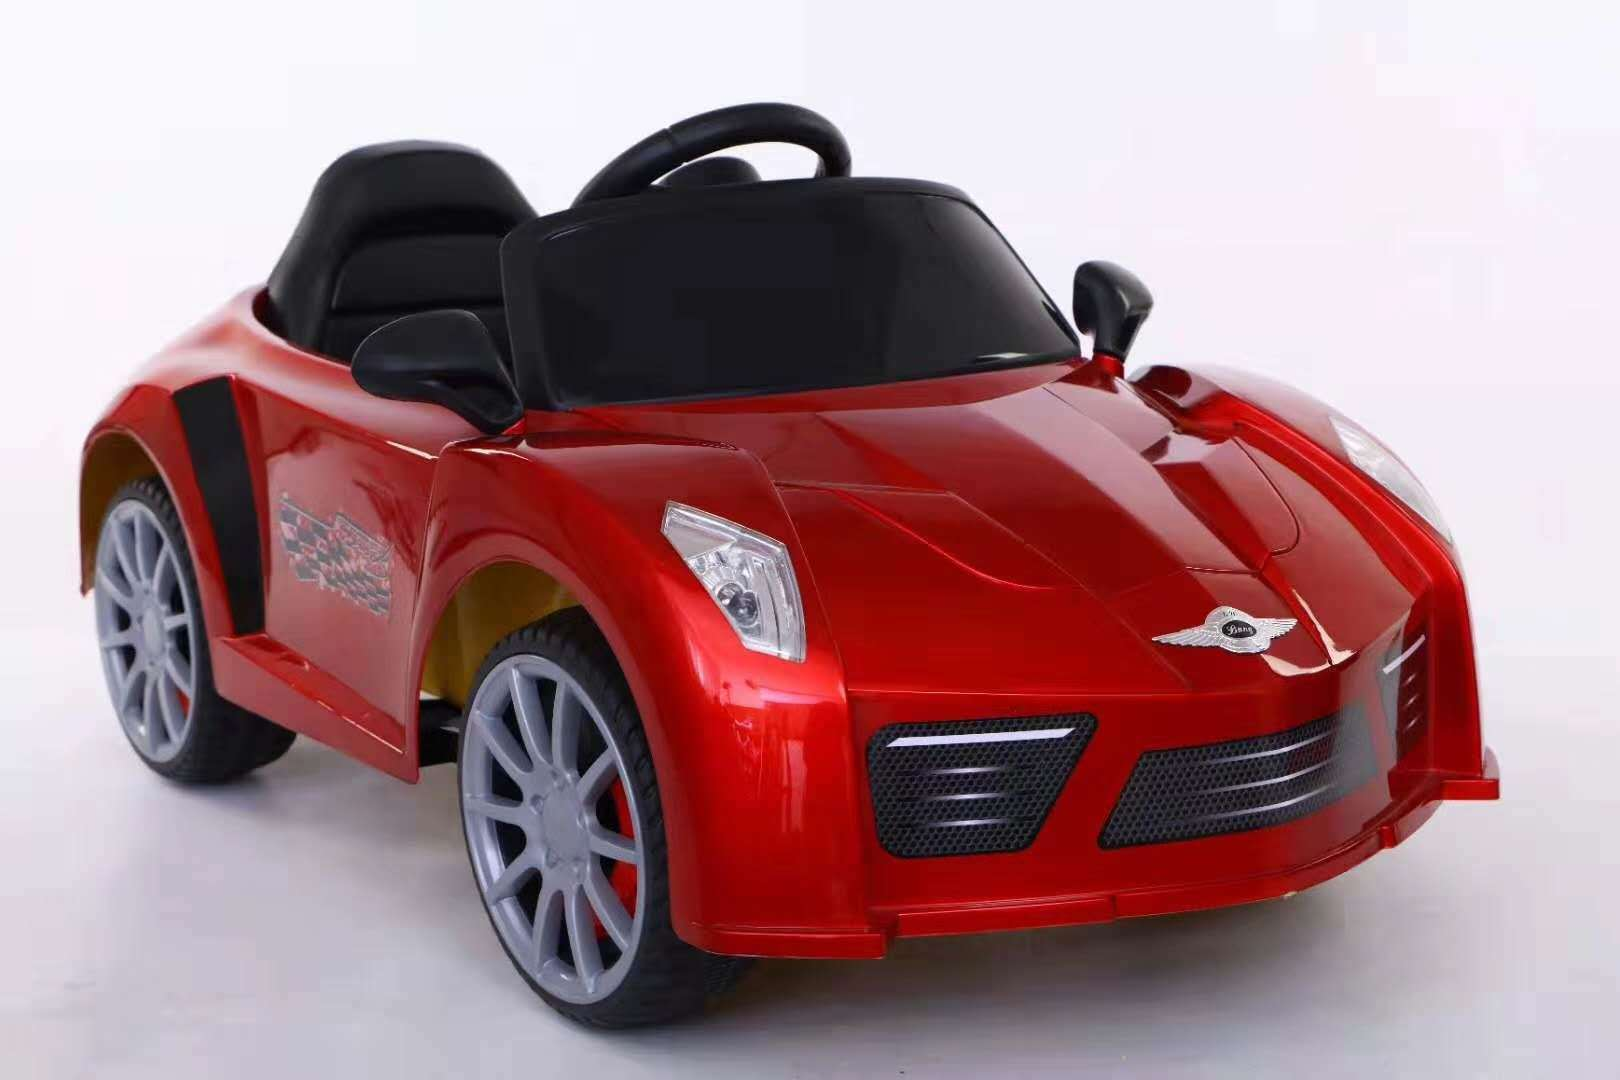 China Ride on Children Electric Car Price Electric Car Kids Electric Car  Ride Kids Driving Cars Kids Cars Toy for Wholesale - China Kids Ride on Car  and Vehicle Toys price